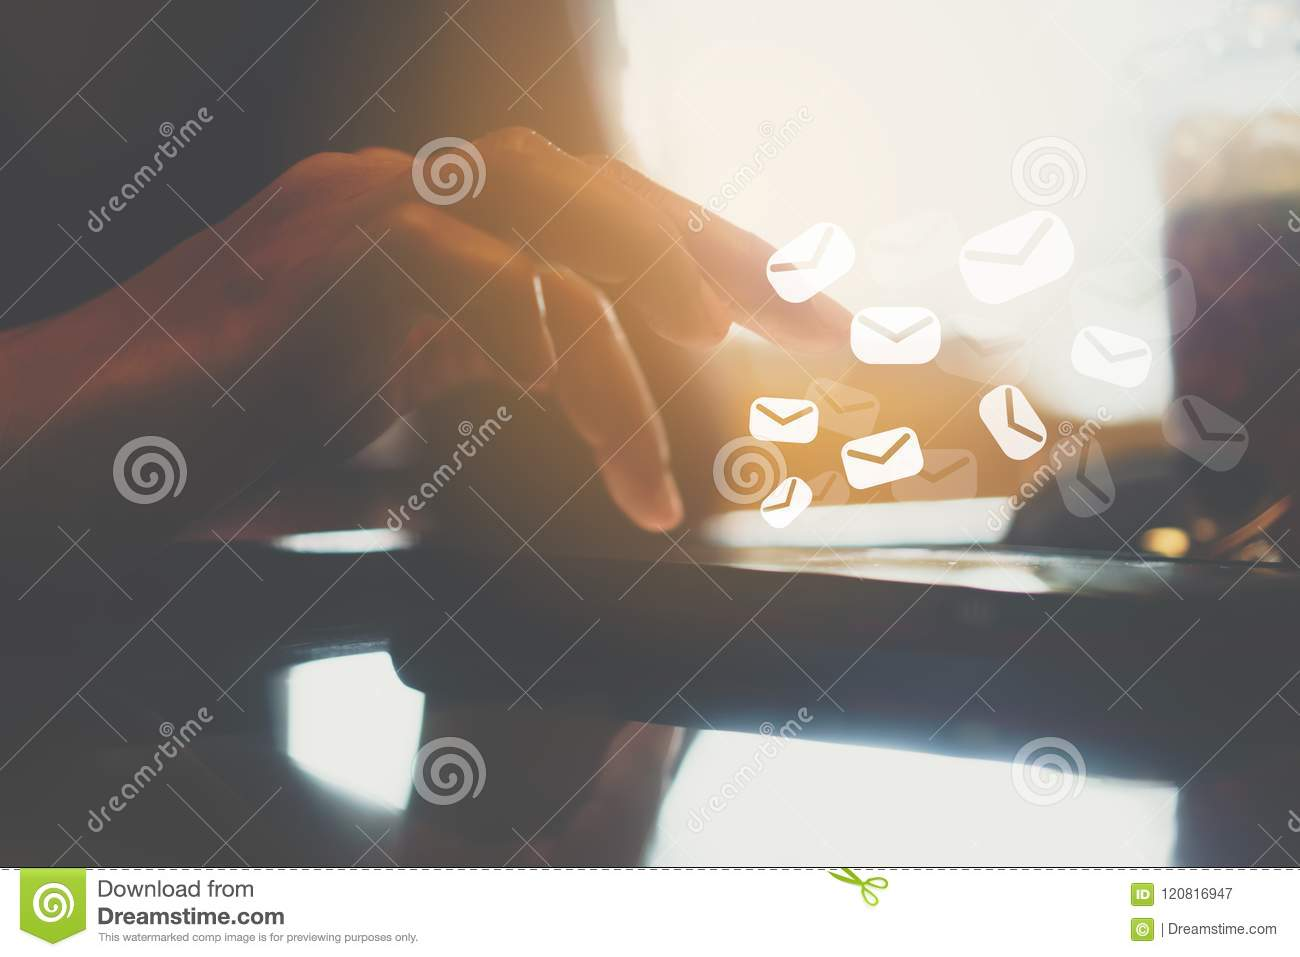 Woman hand using smartphone to send and recieve email for business on nature bokeh background.